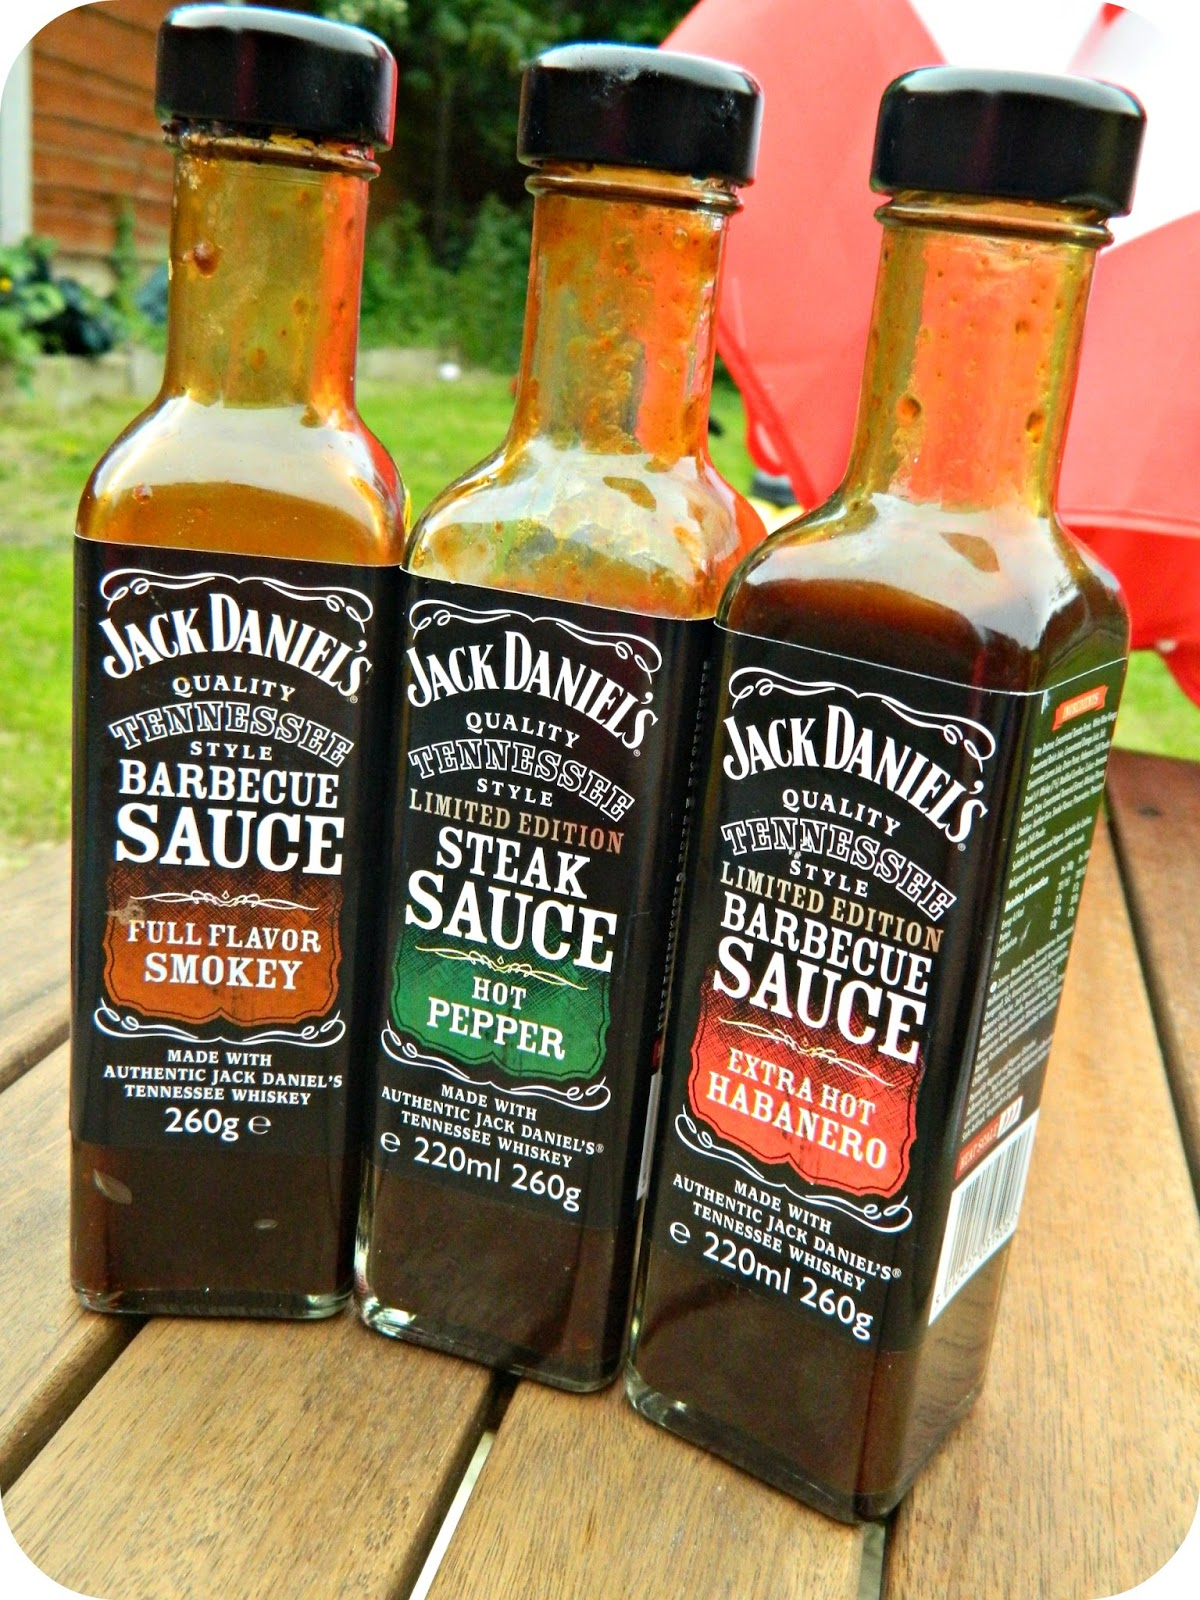 Jack Daniel's Barbecue Sauces